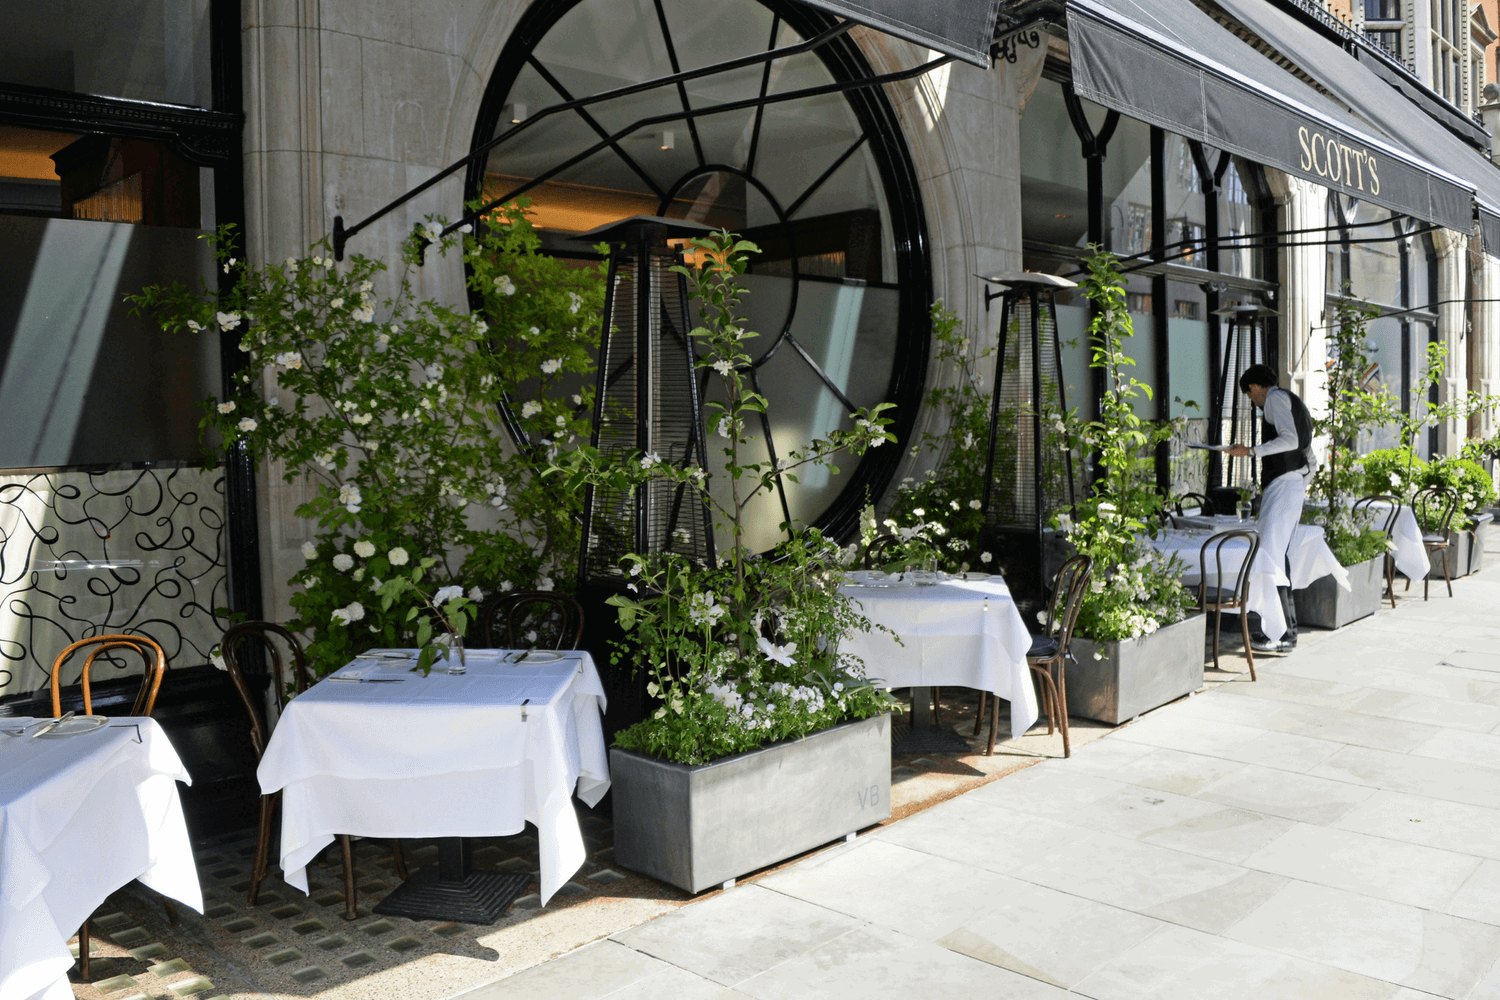 Restaurant with a Terrace, The Victoria Beckham Terrace at Scott's, Mayfair